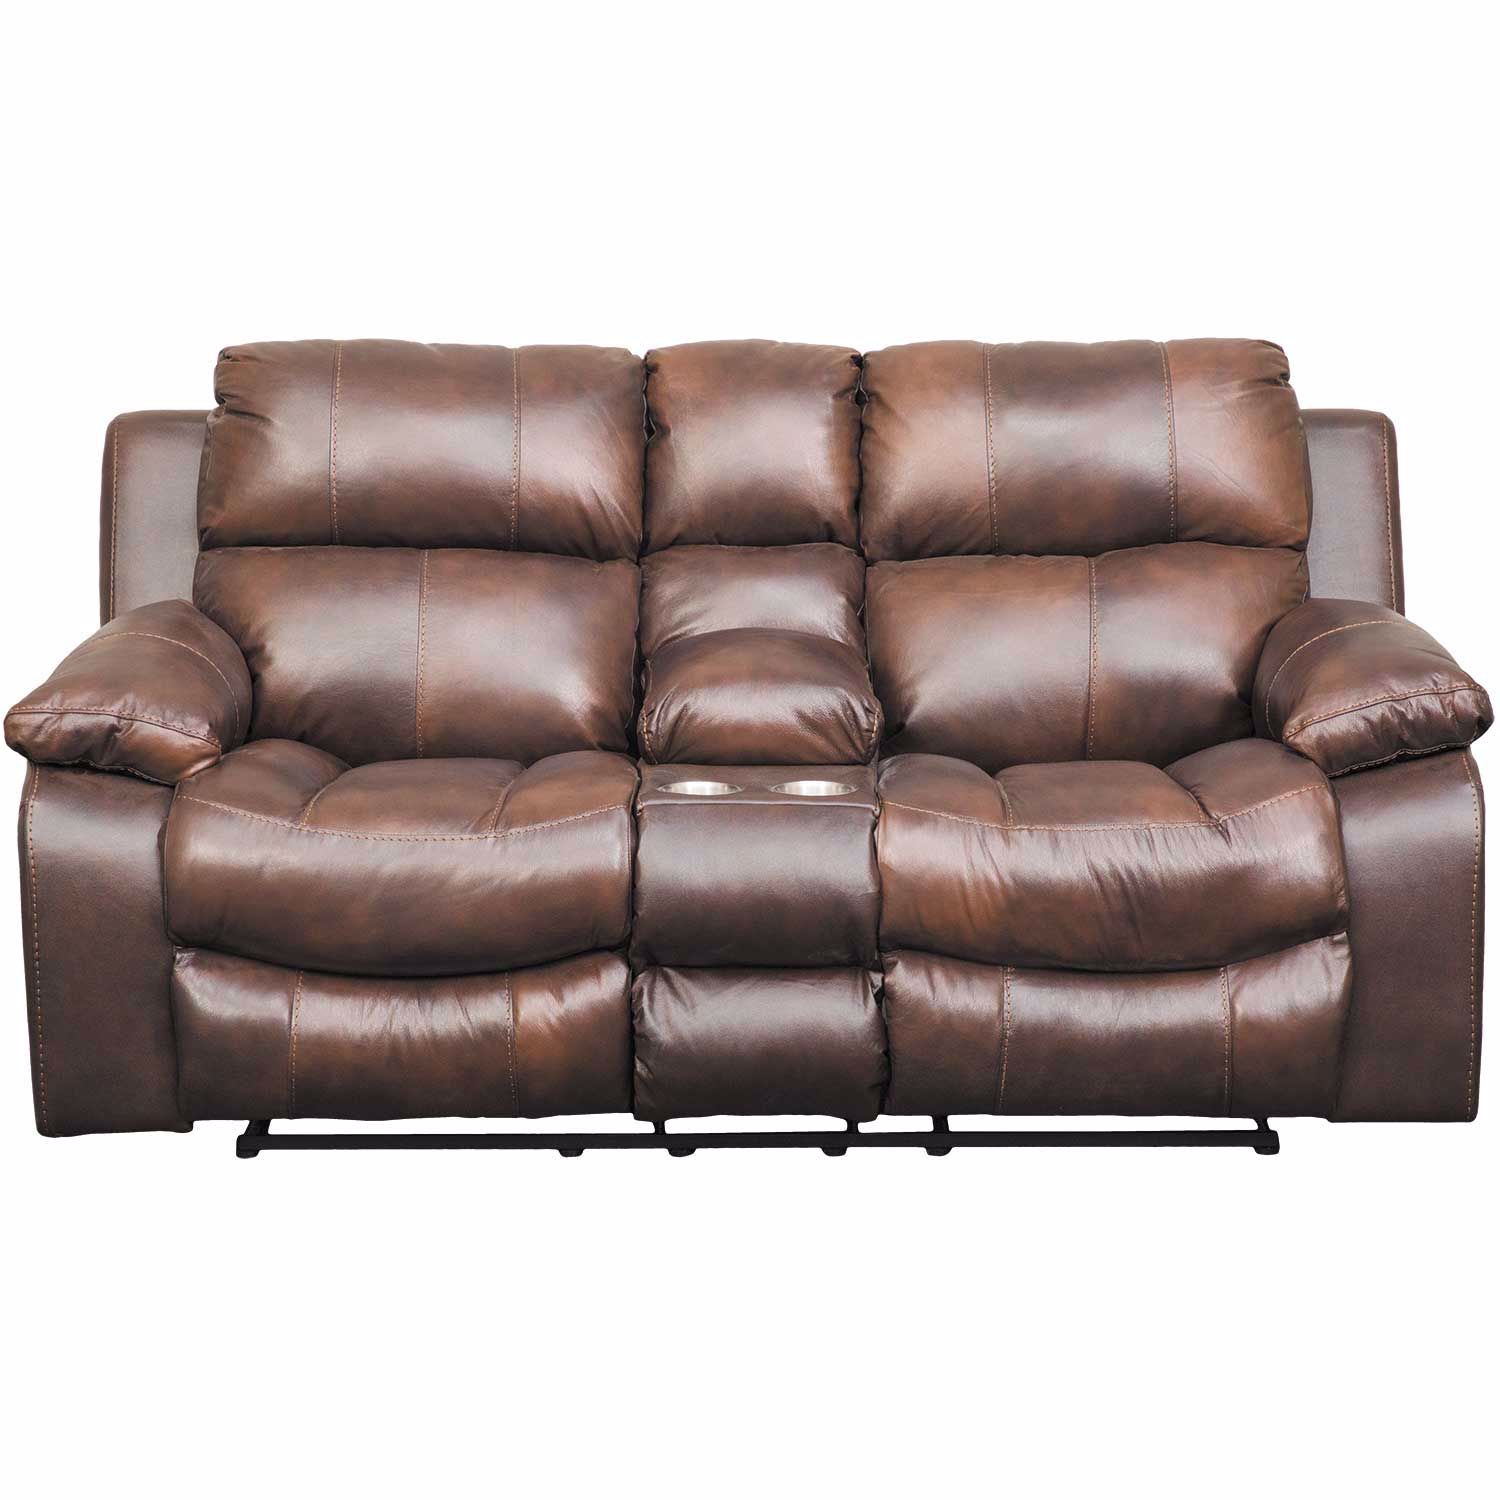 Picture of Positano Leather Power Reclining Console Loveseat